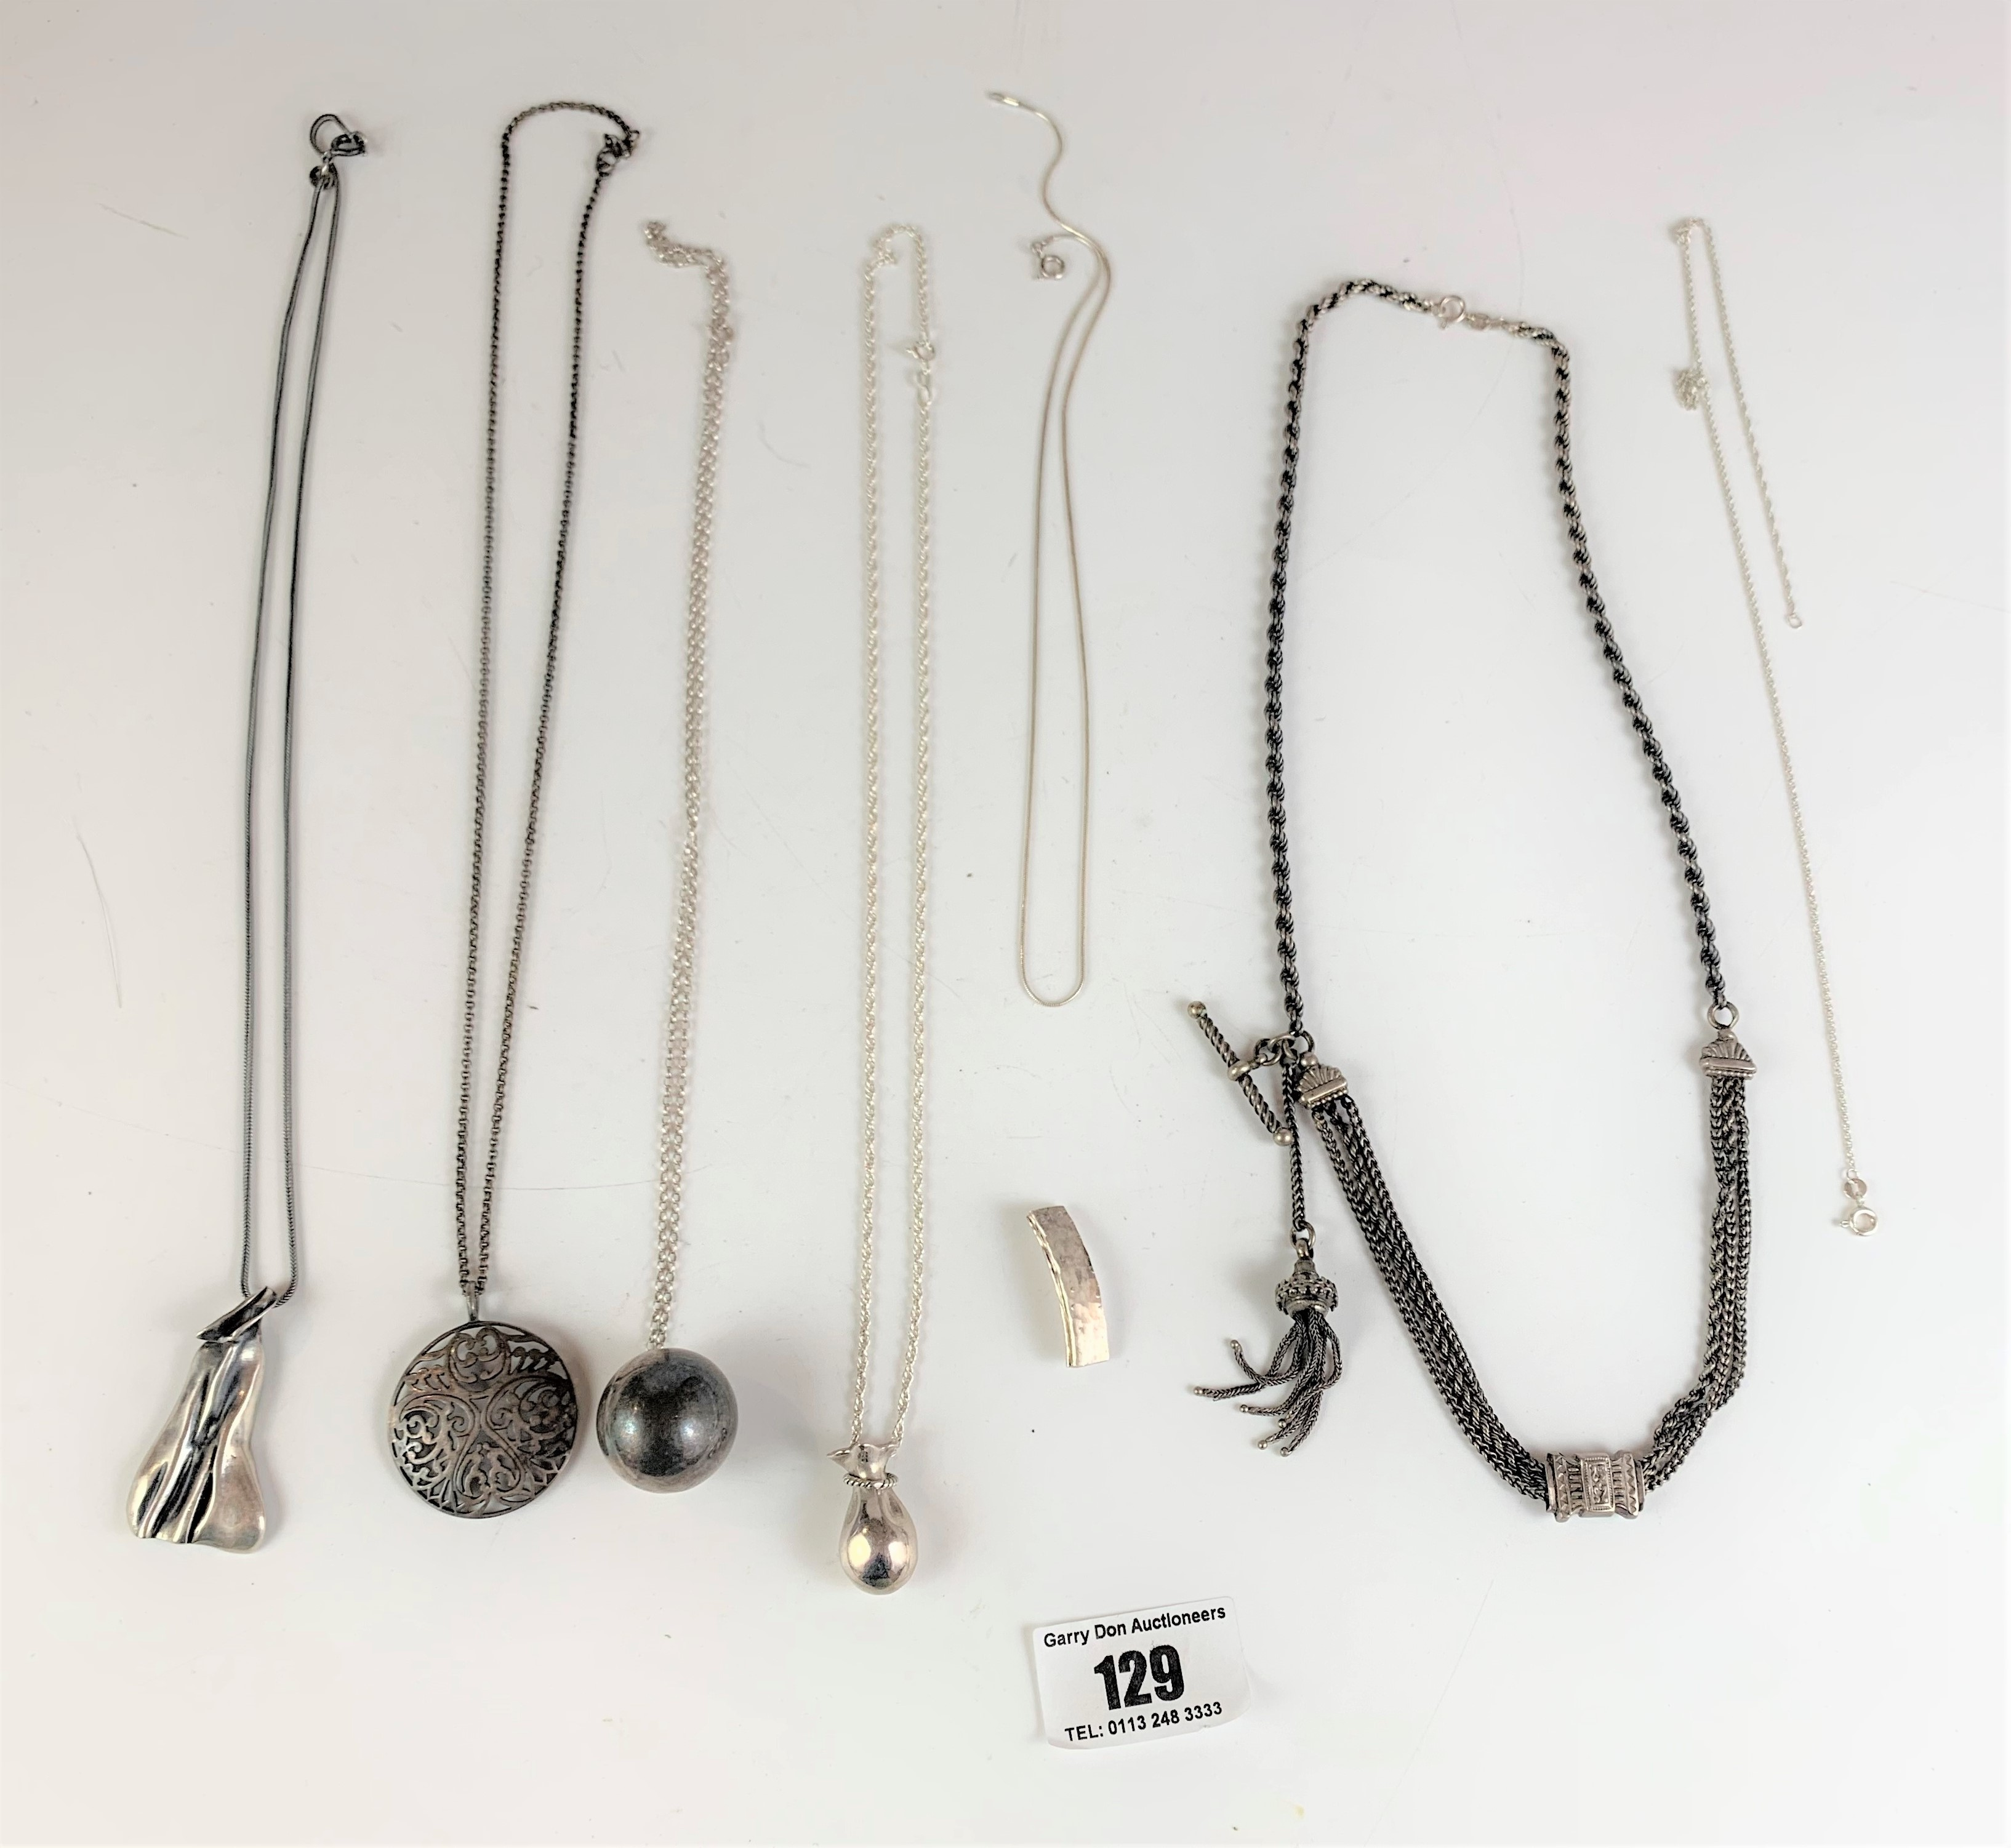 7 assorted silver necklaces and pendants, total w: 2.4 ozt